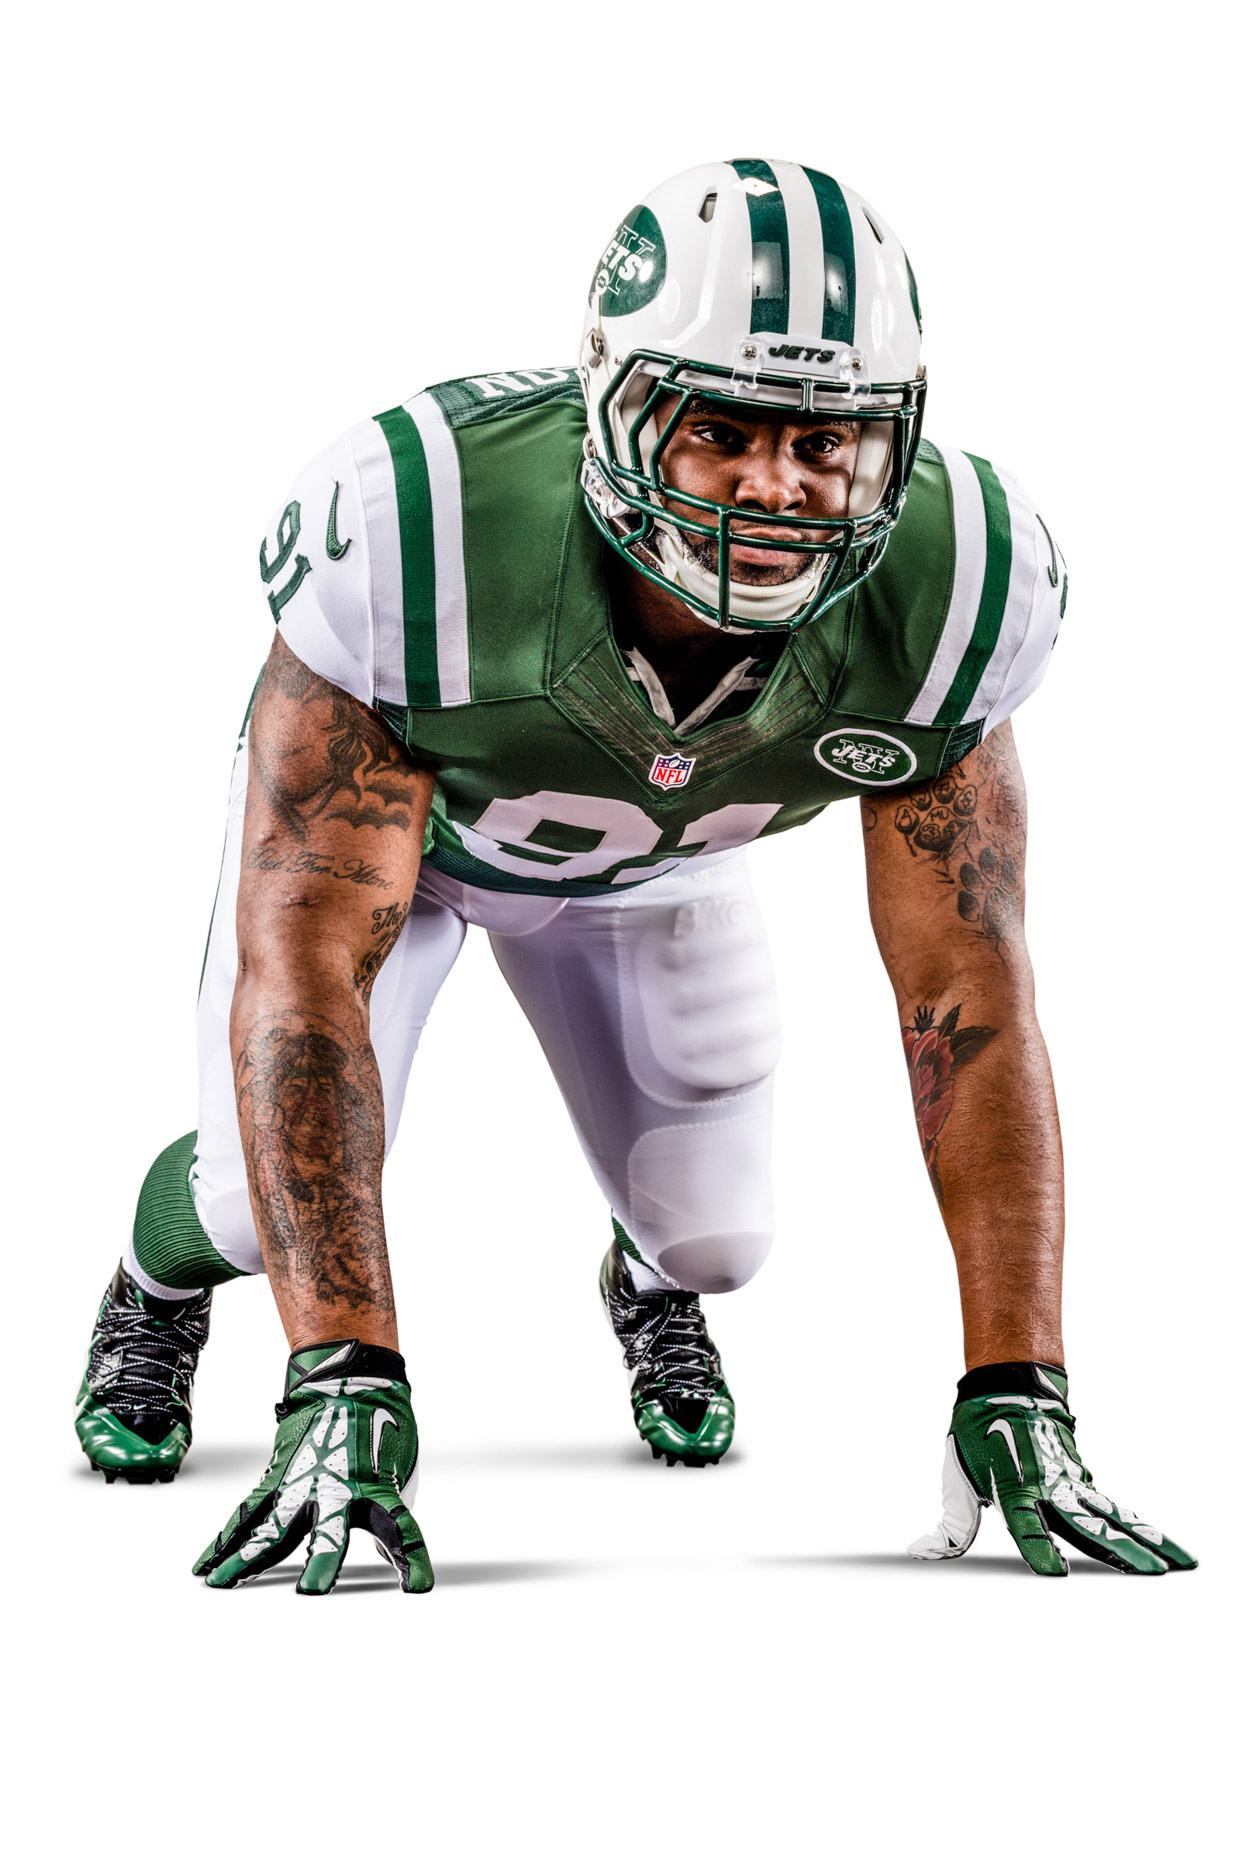 Sheldon Richardson is an American football defensive end for the New York Jets of the National Football League.